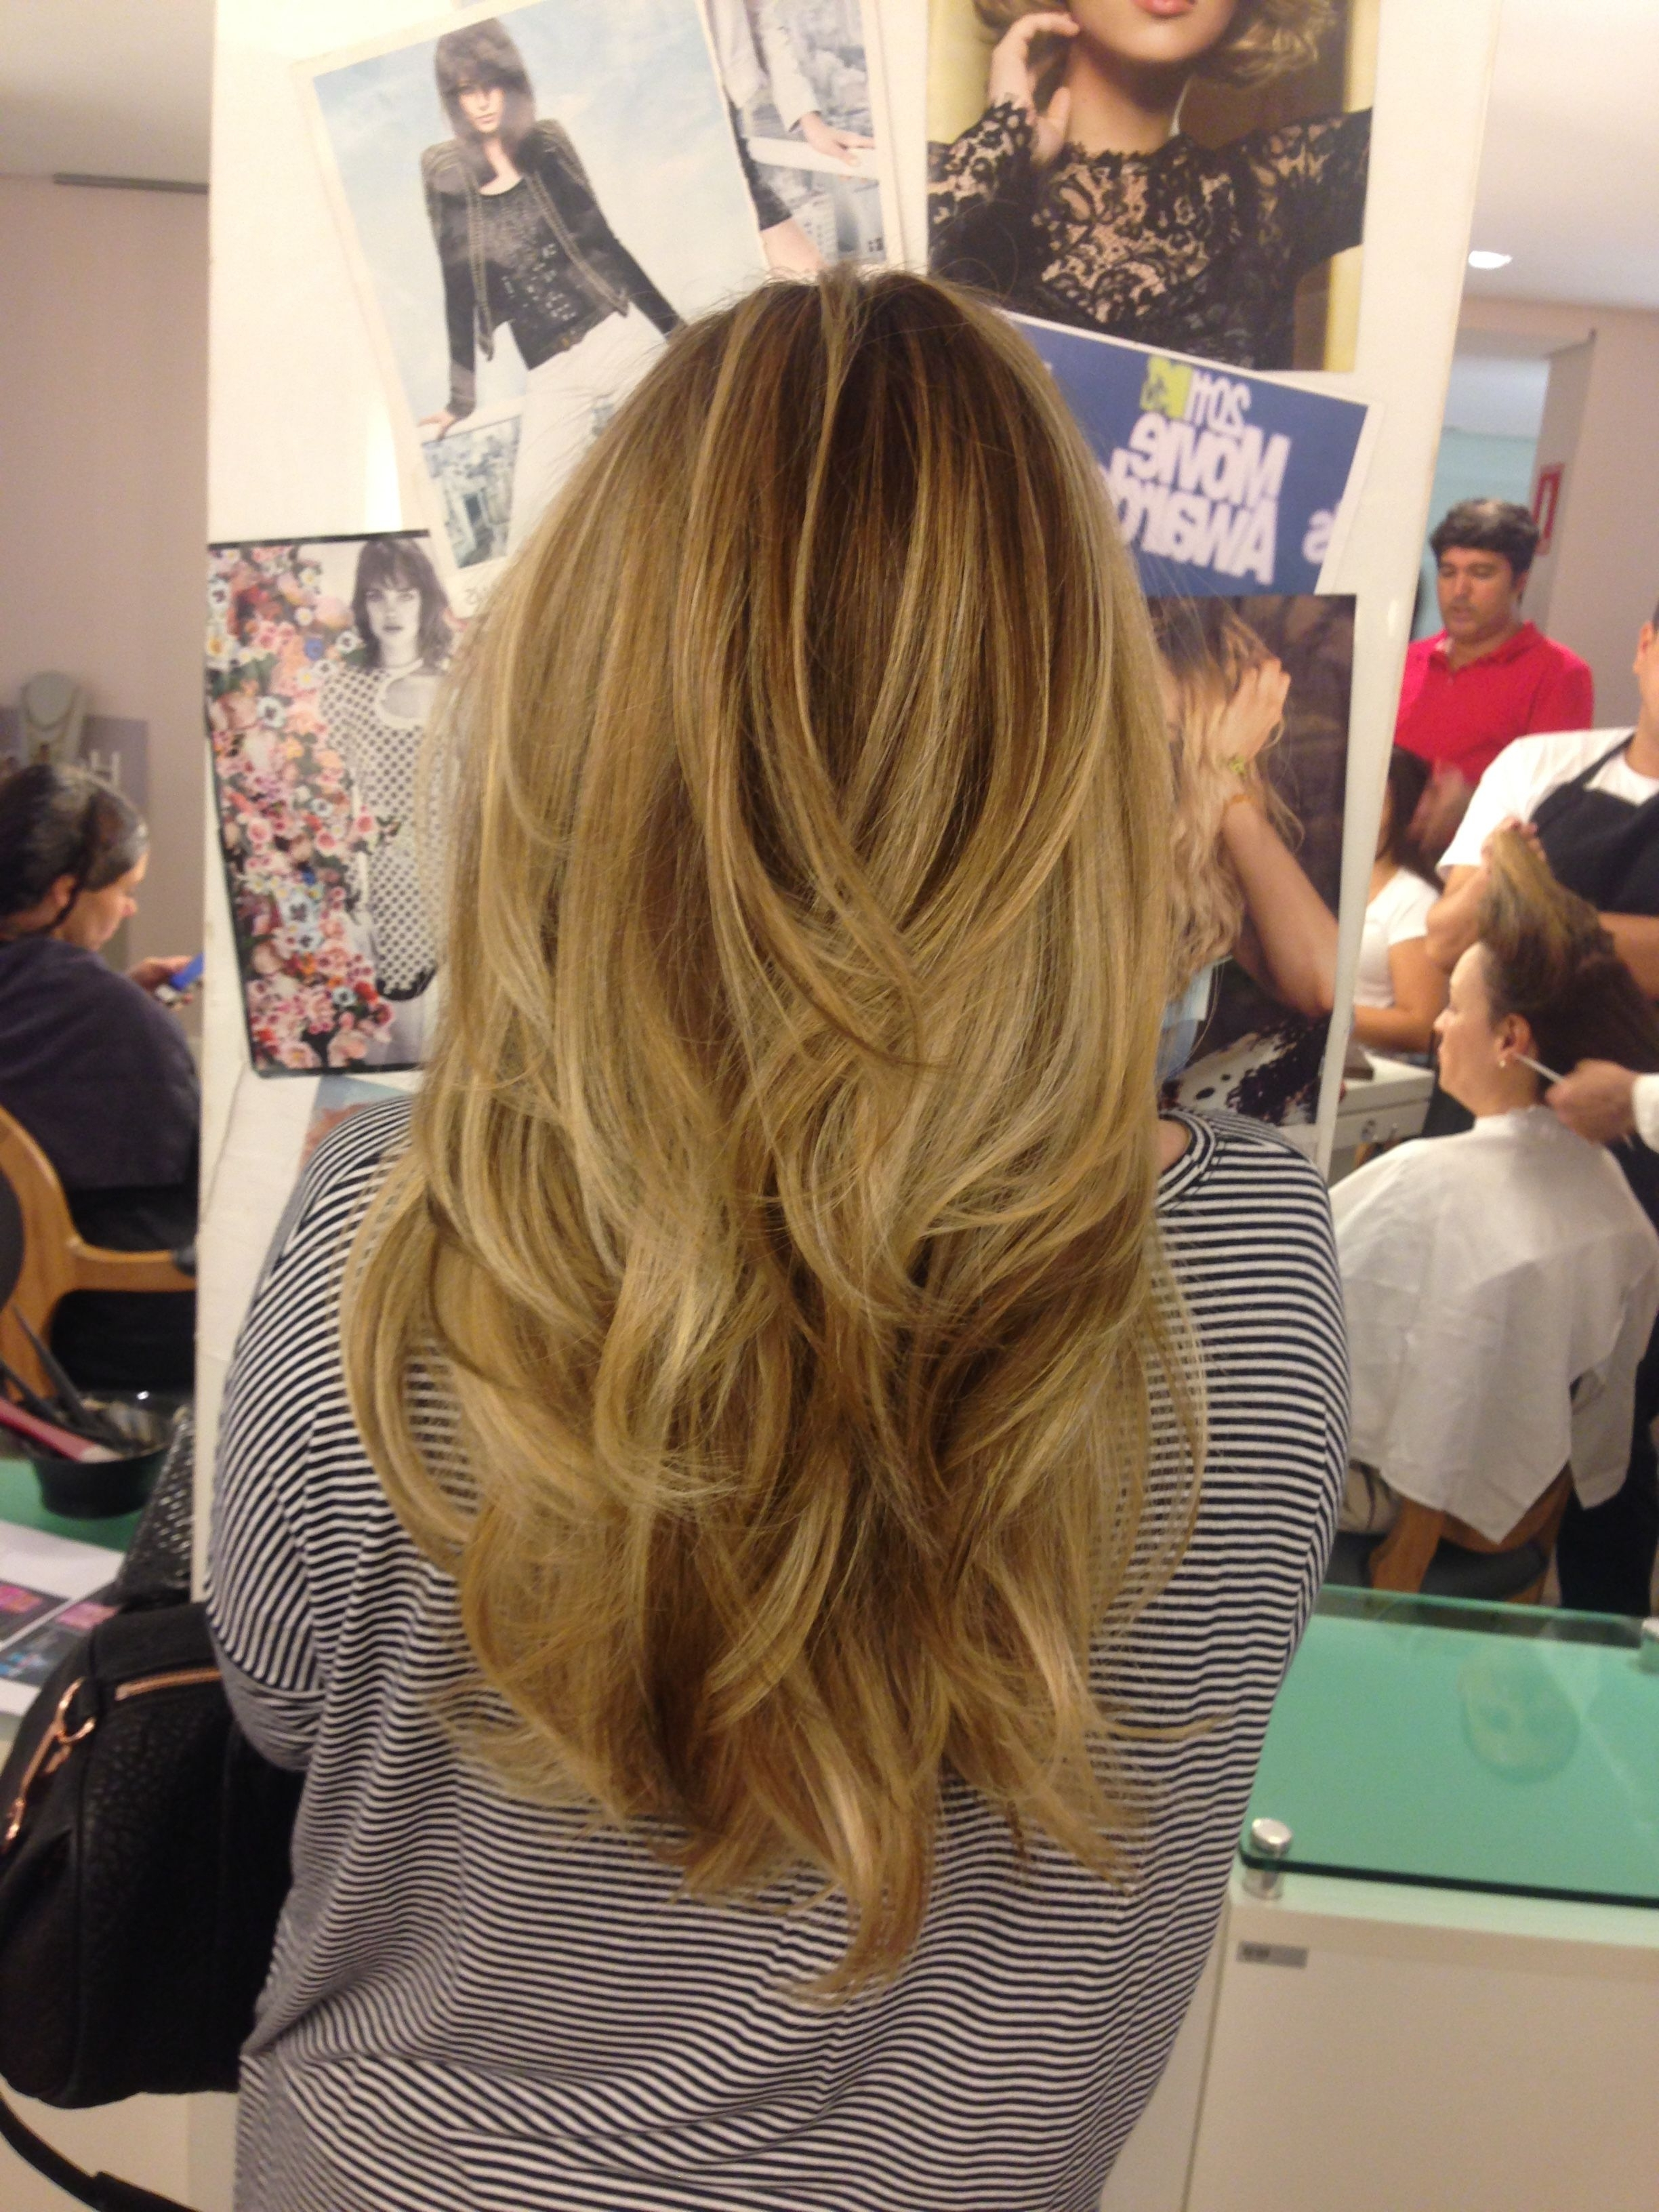 This Is Me Back To Blond Hair! Some Would Call It Ombré, Others Pertaining To Current Tortoiseshell Curls Blonde Hairstyles (View 9 of 20)